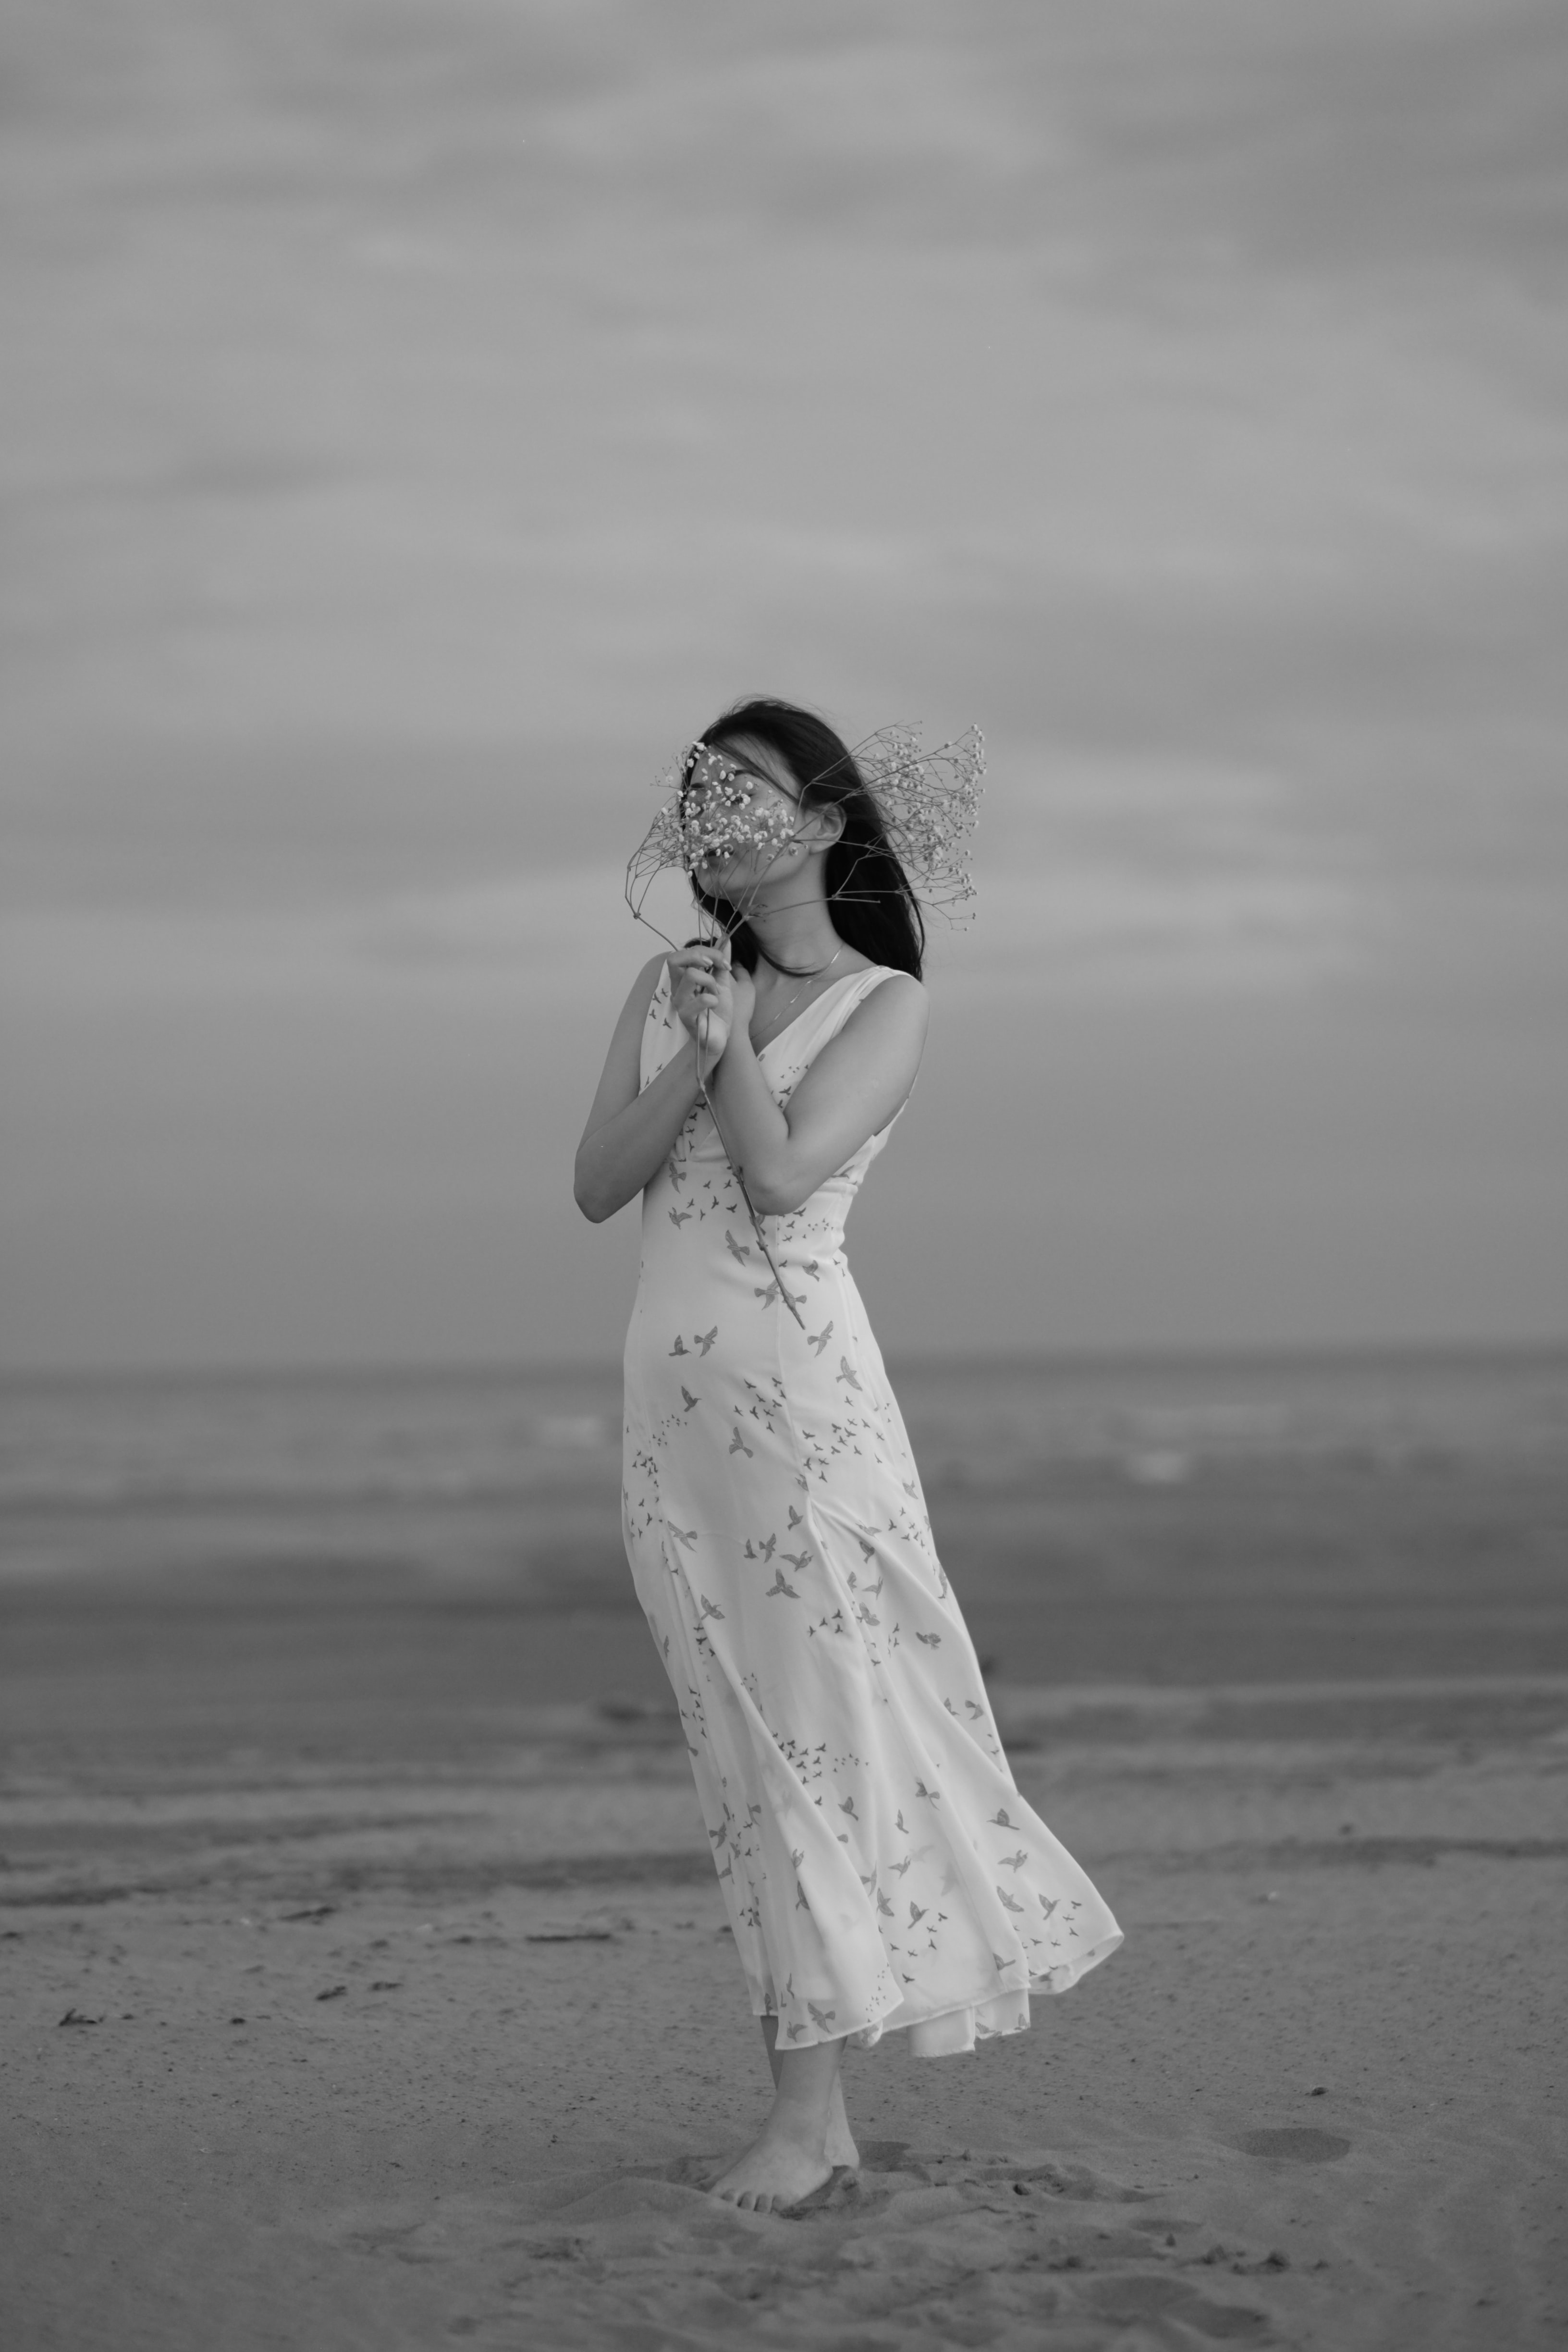 grayscale photo woman holding flower